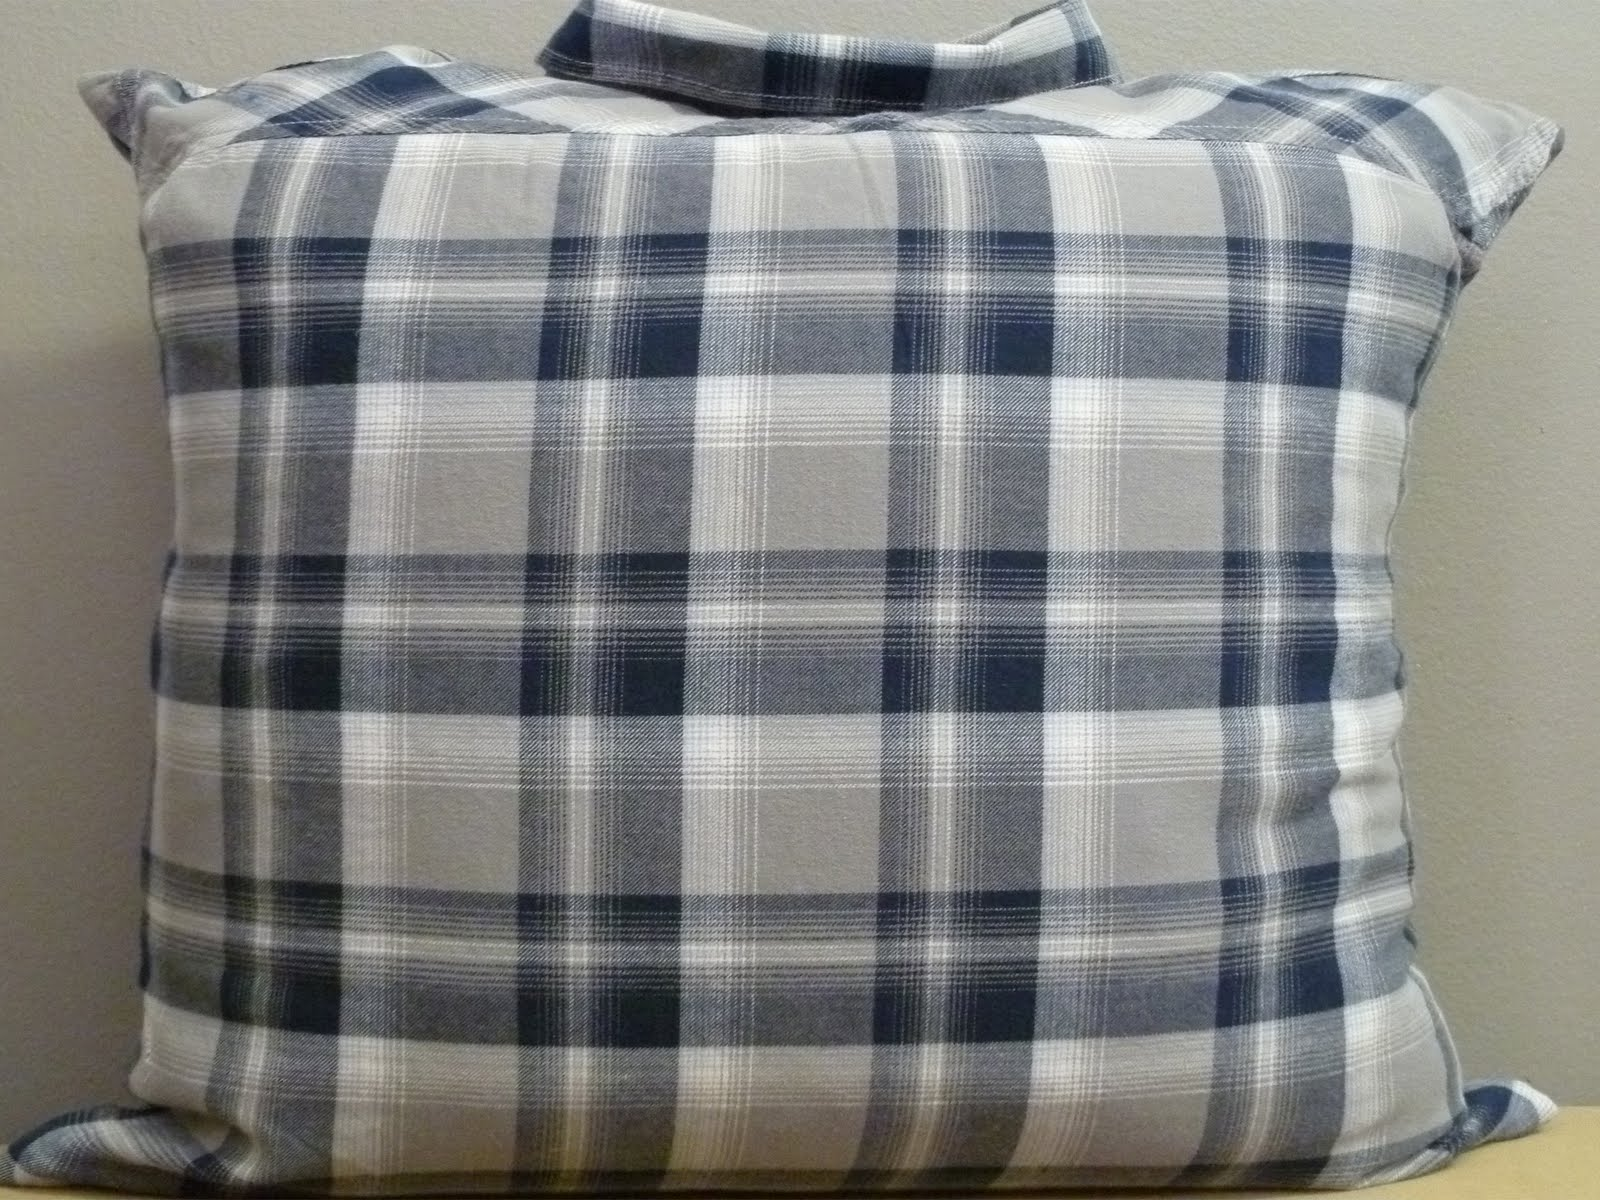 nakedwindow: 16x16 mens blue and gray flannel plaid shirt ...